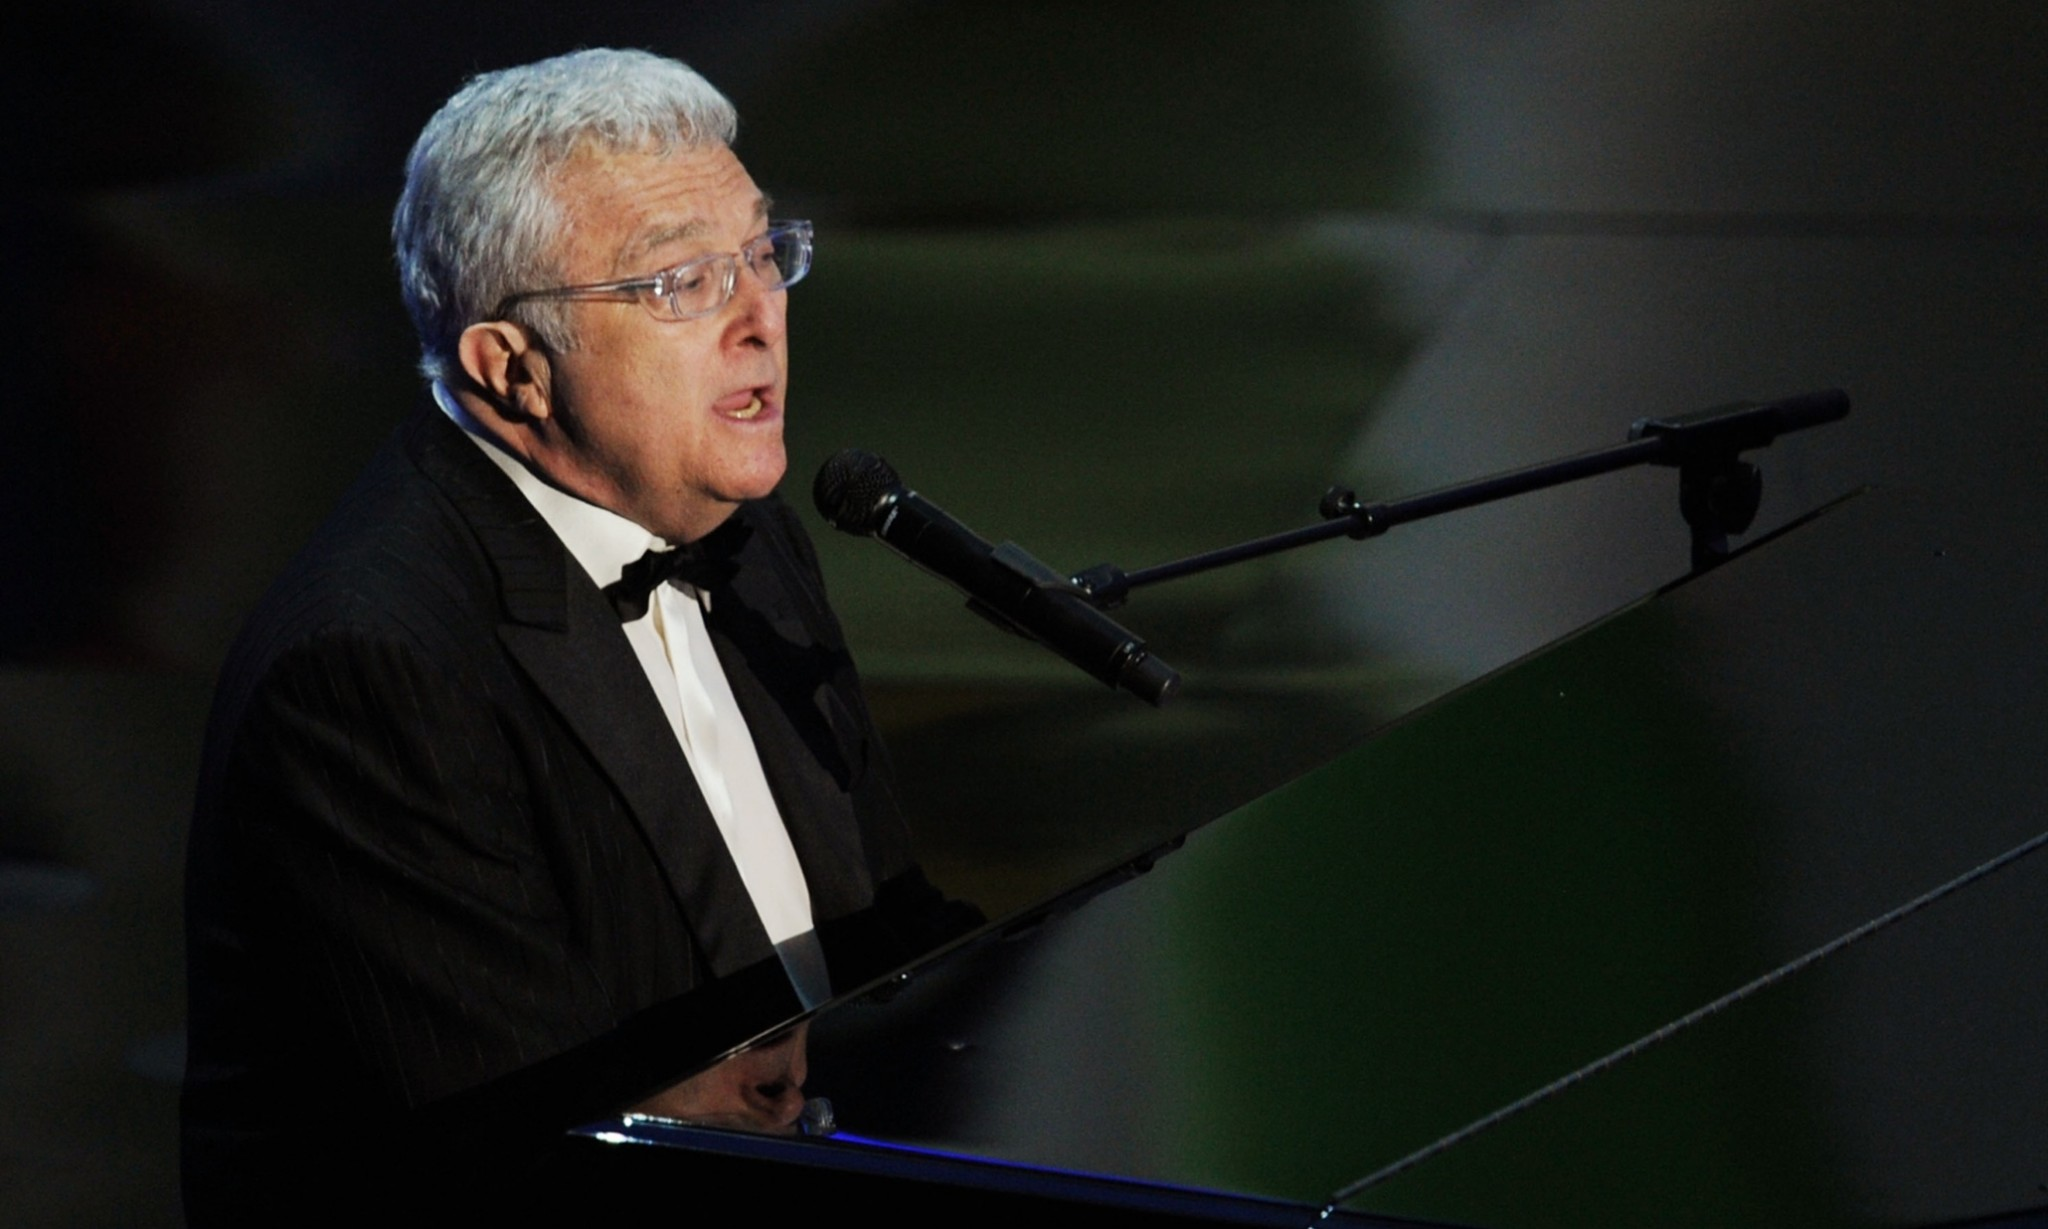 HOLLYWOOD, CA - FEBRUARY 27: Musician Randy Newman performs the Best Achievement in Music Written for Motion Pictures, Original Song nominee 'We Belong Together' from the motion picture 'Toy Story 3' onstage during the 83rd Annual Academy Awards held at the Kodak Theatre on February 27, 2011 in Hollywood, California. (Photo by Kevin Winter/Getty Images)